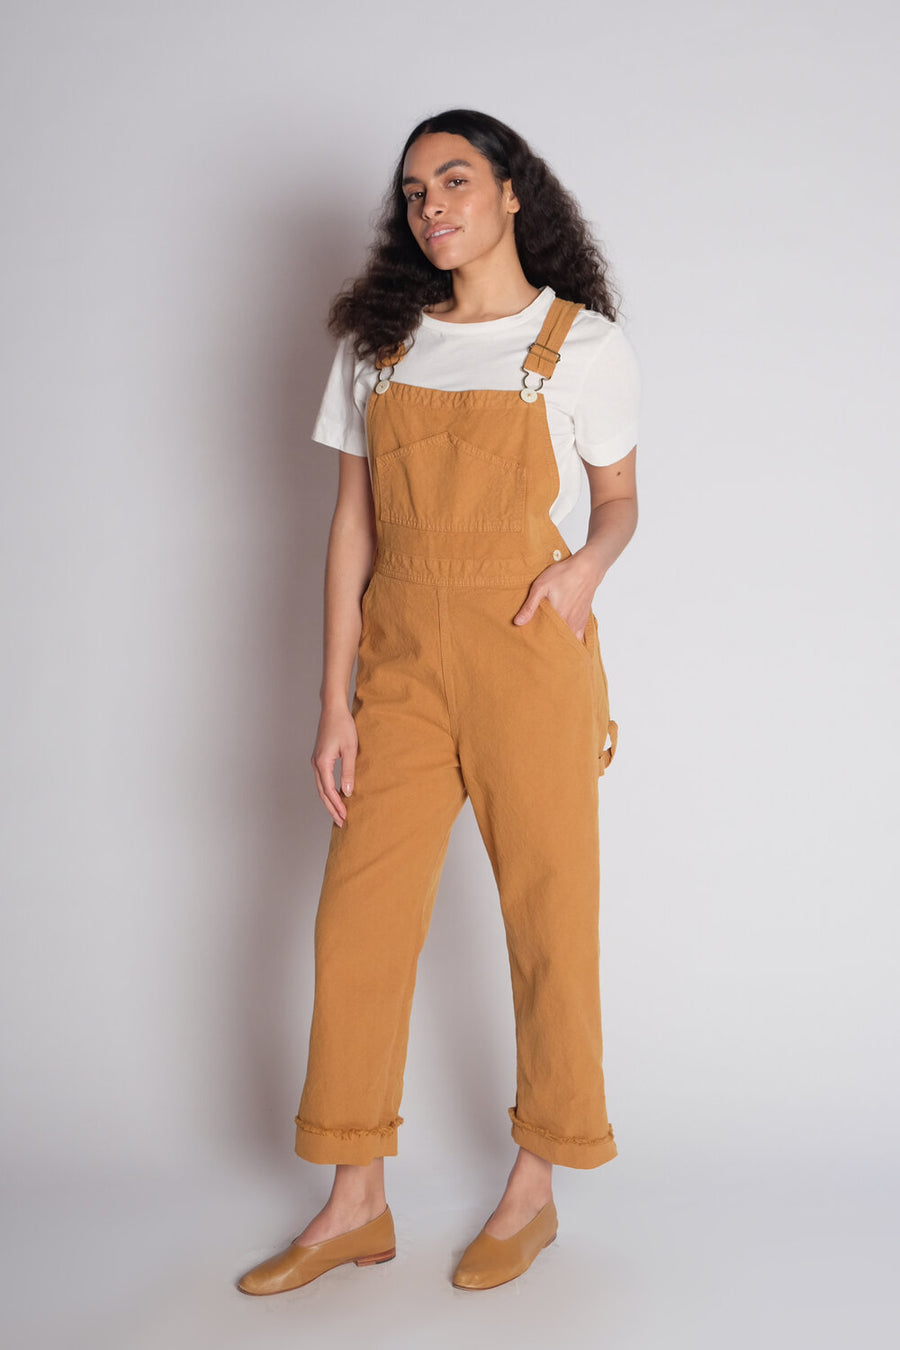 The Overalls in Cork